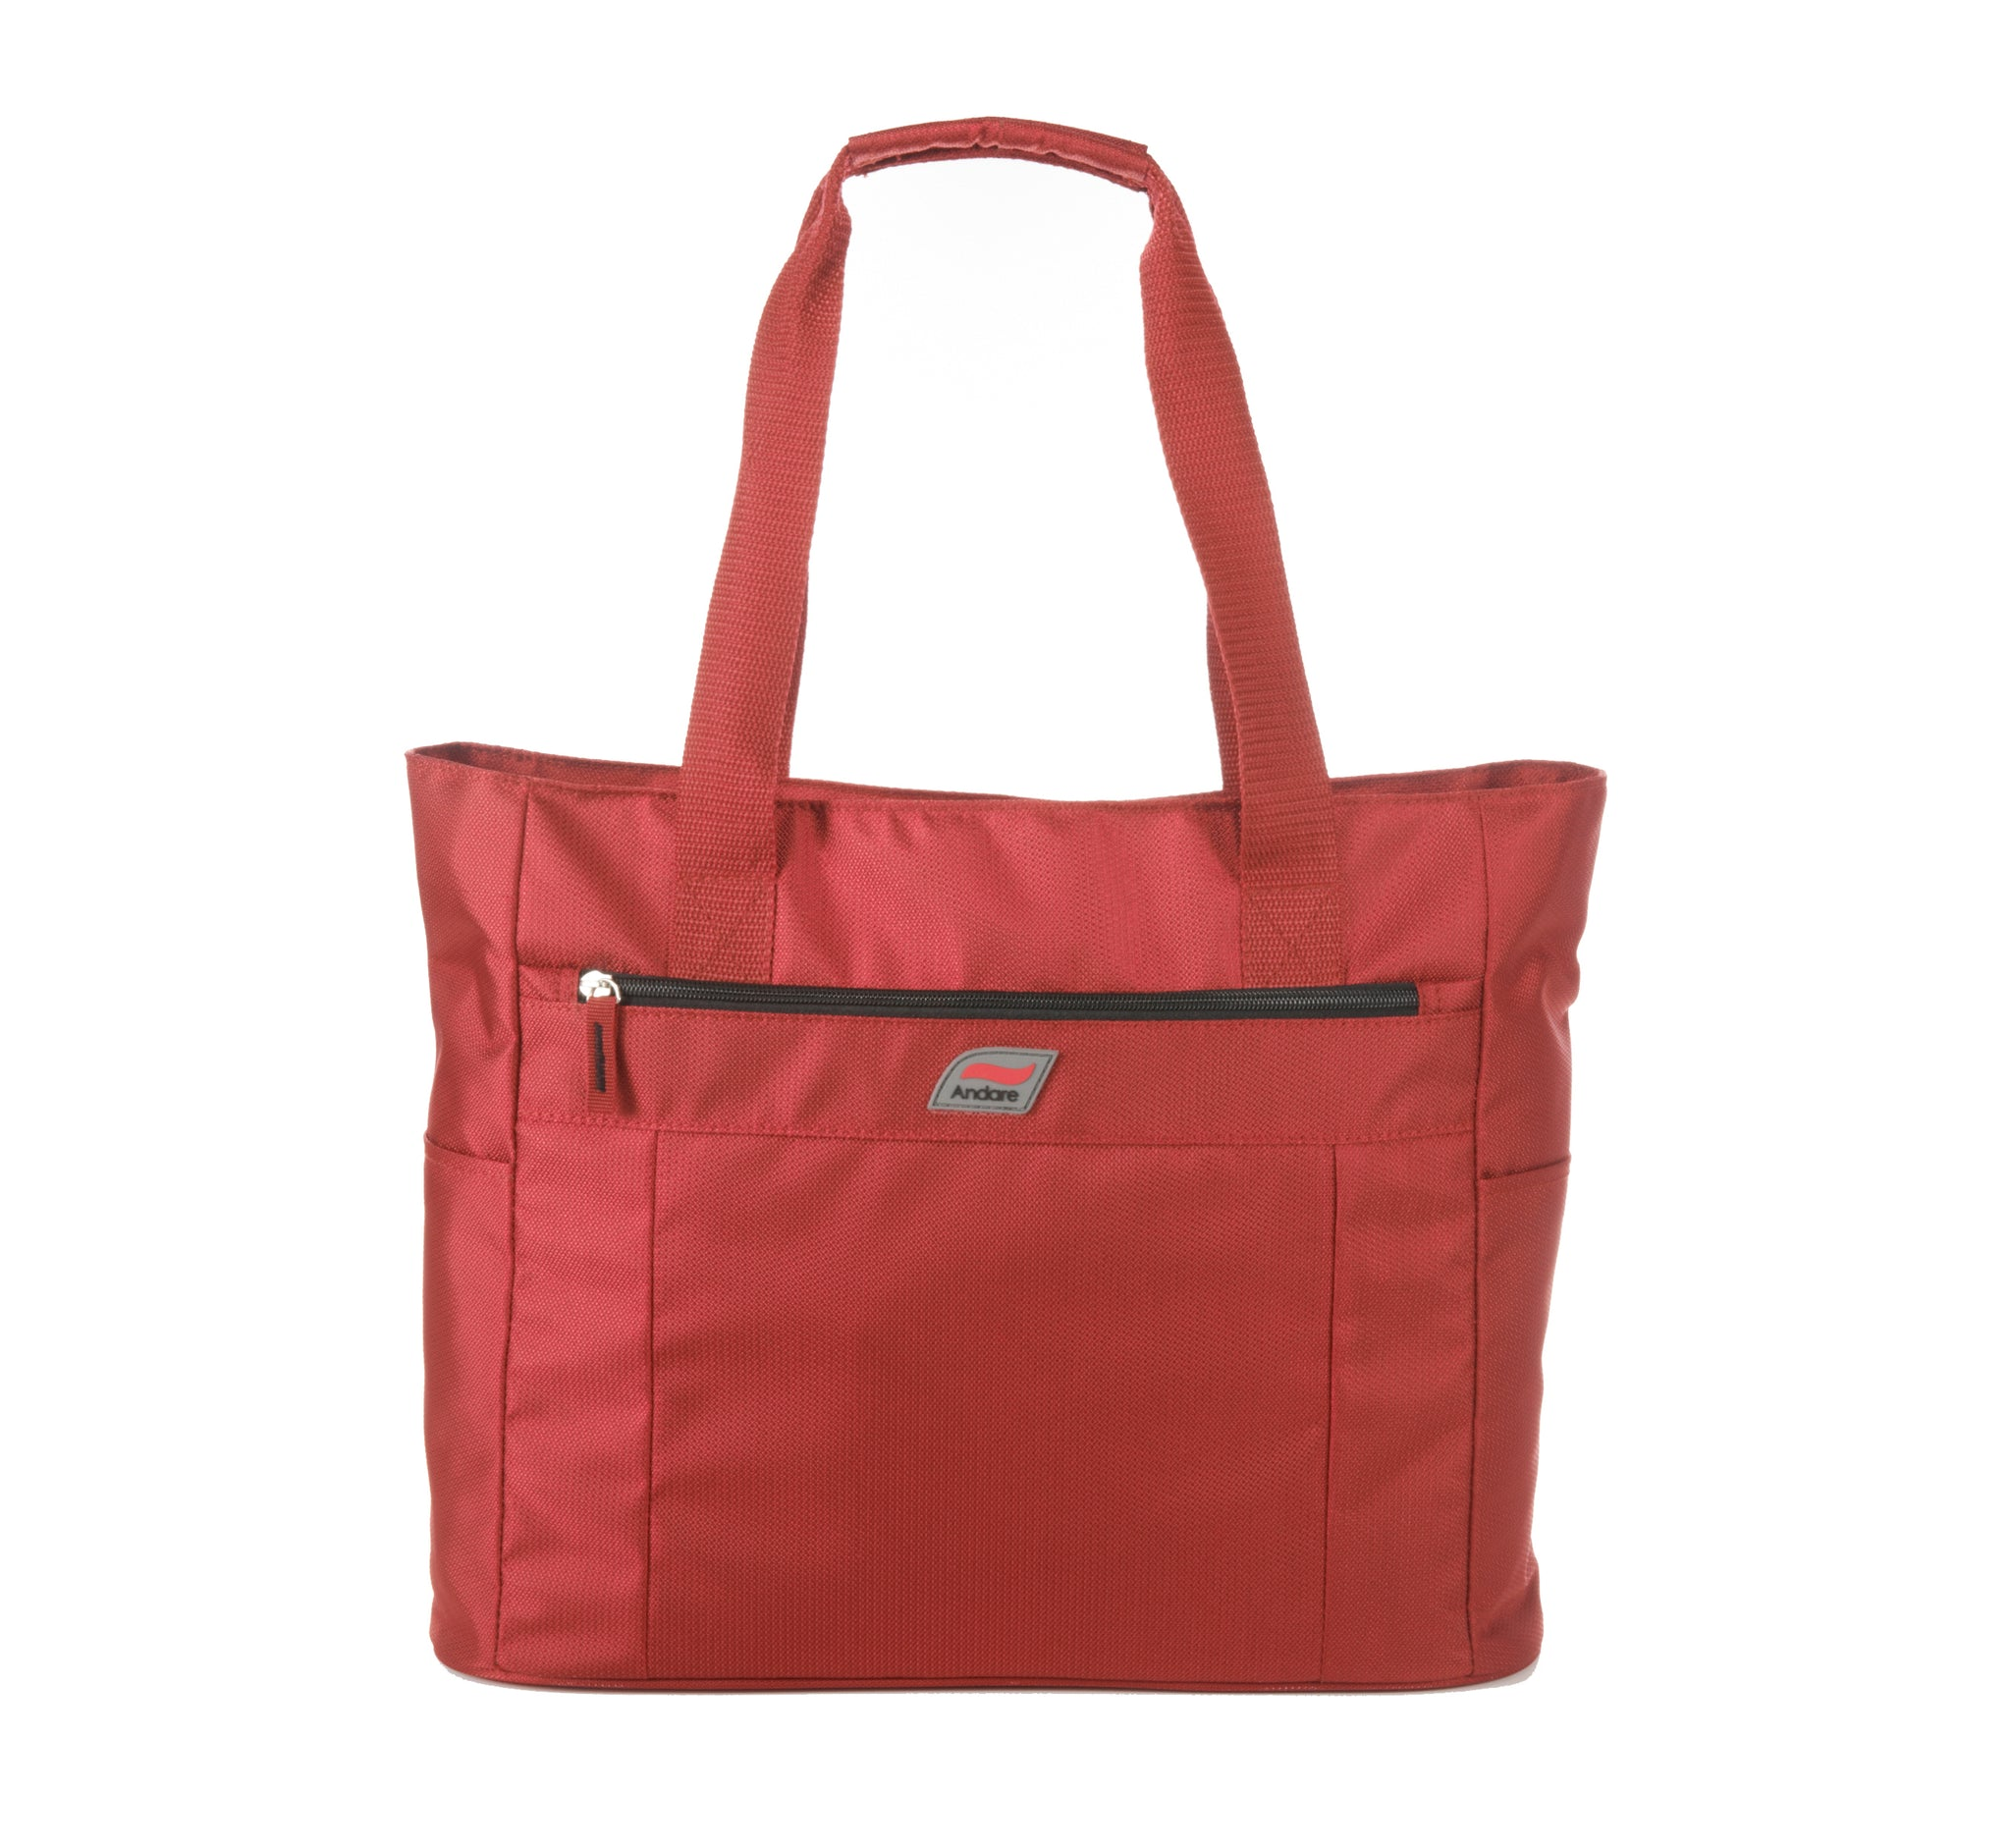 CLOSEOUT: Buenos Aires Tote